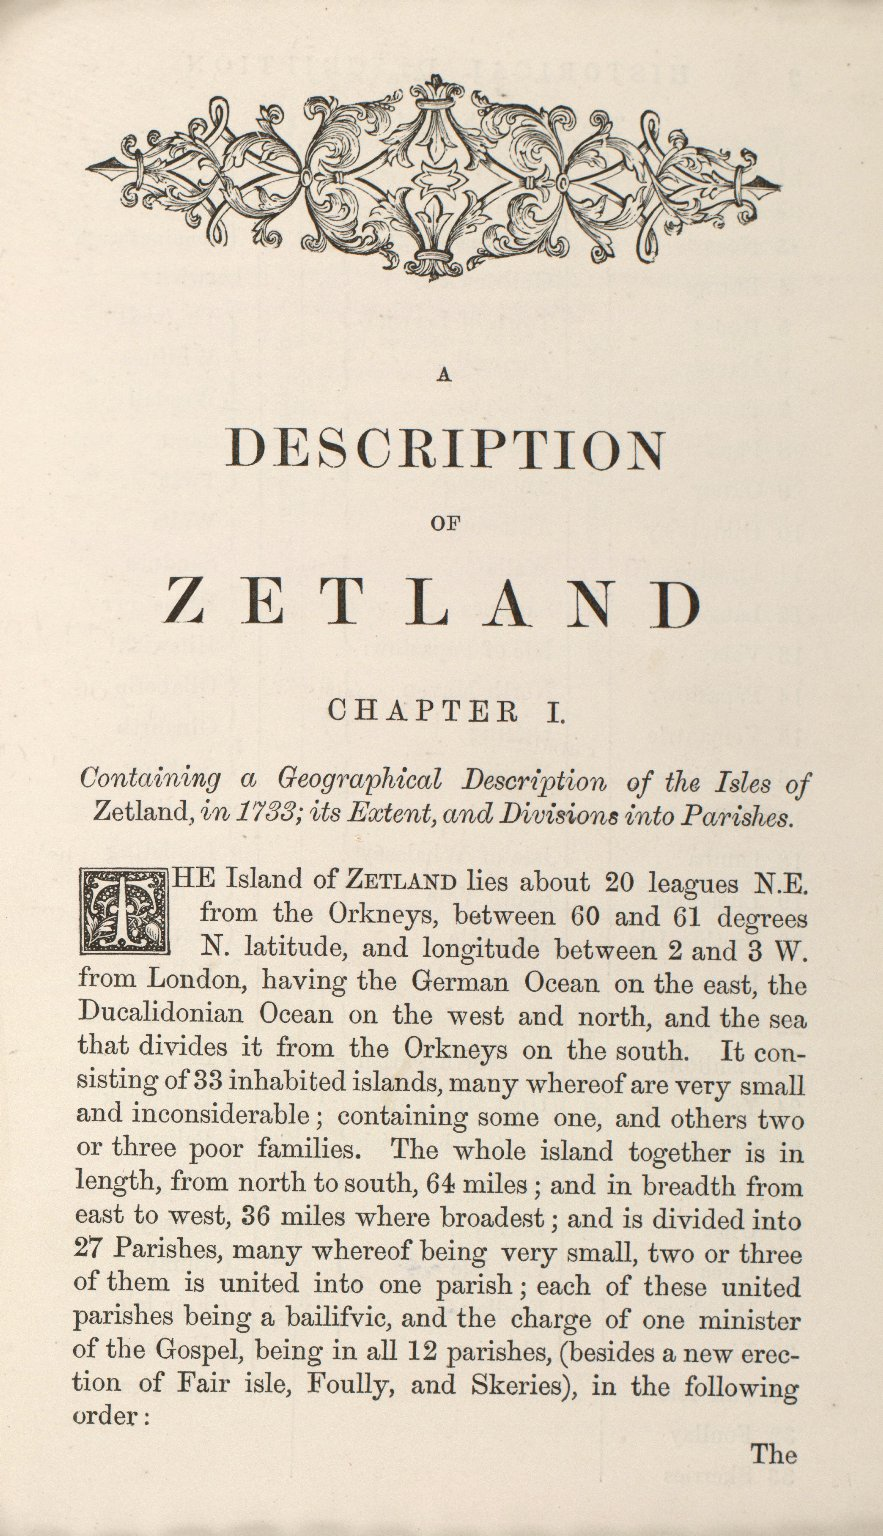 Historical Description of the Zetland Islands in the year 1733. [17 of 25]